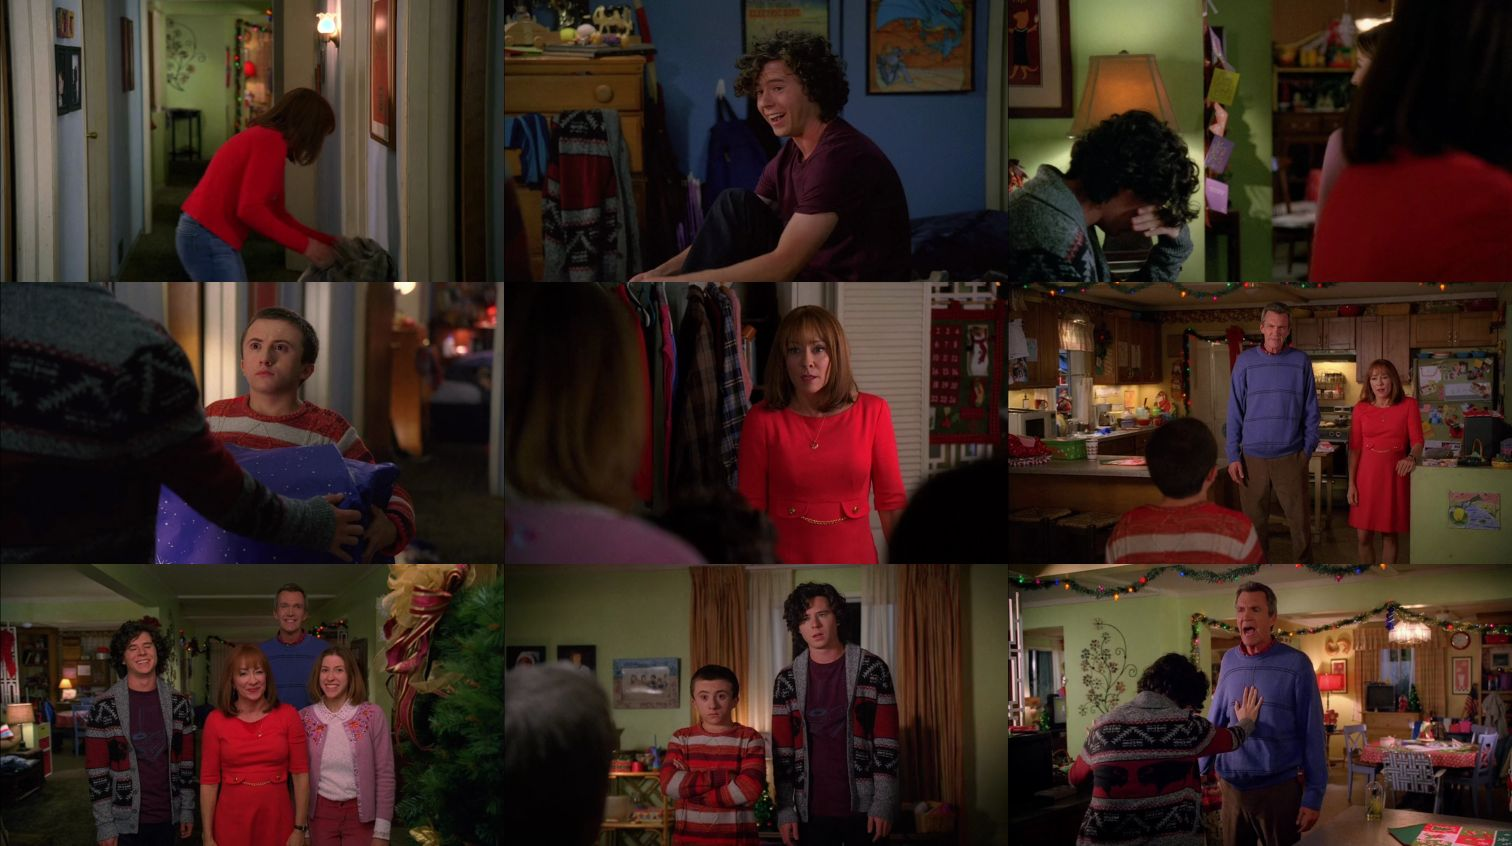 The Middle S07E10 720p HDTV X264-DIMENSION